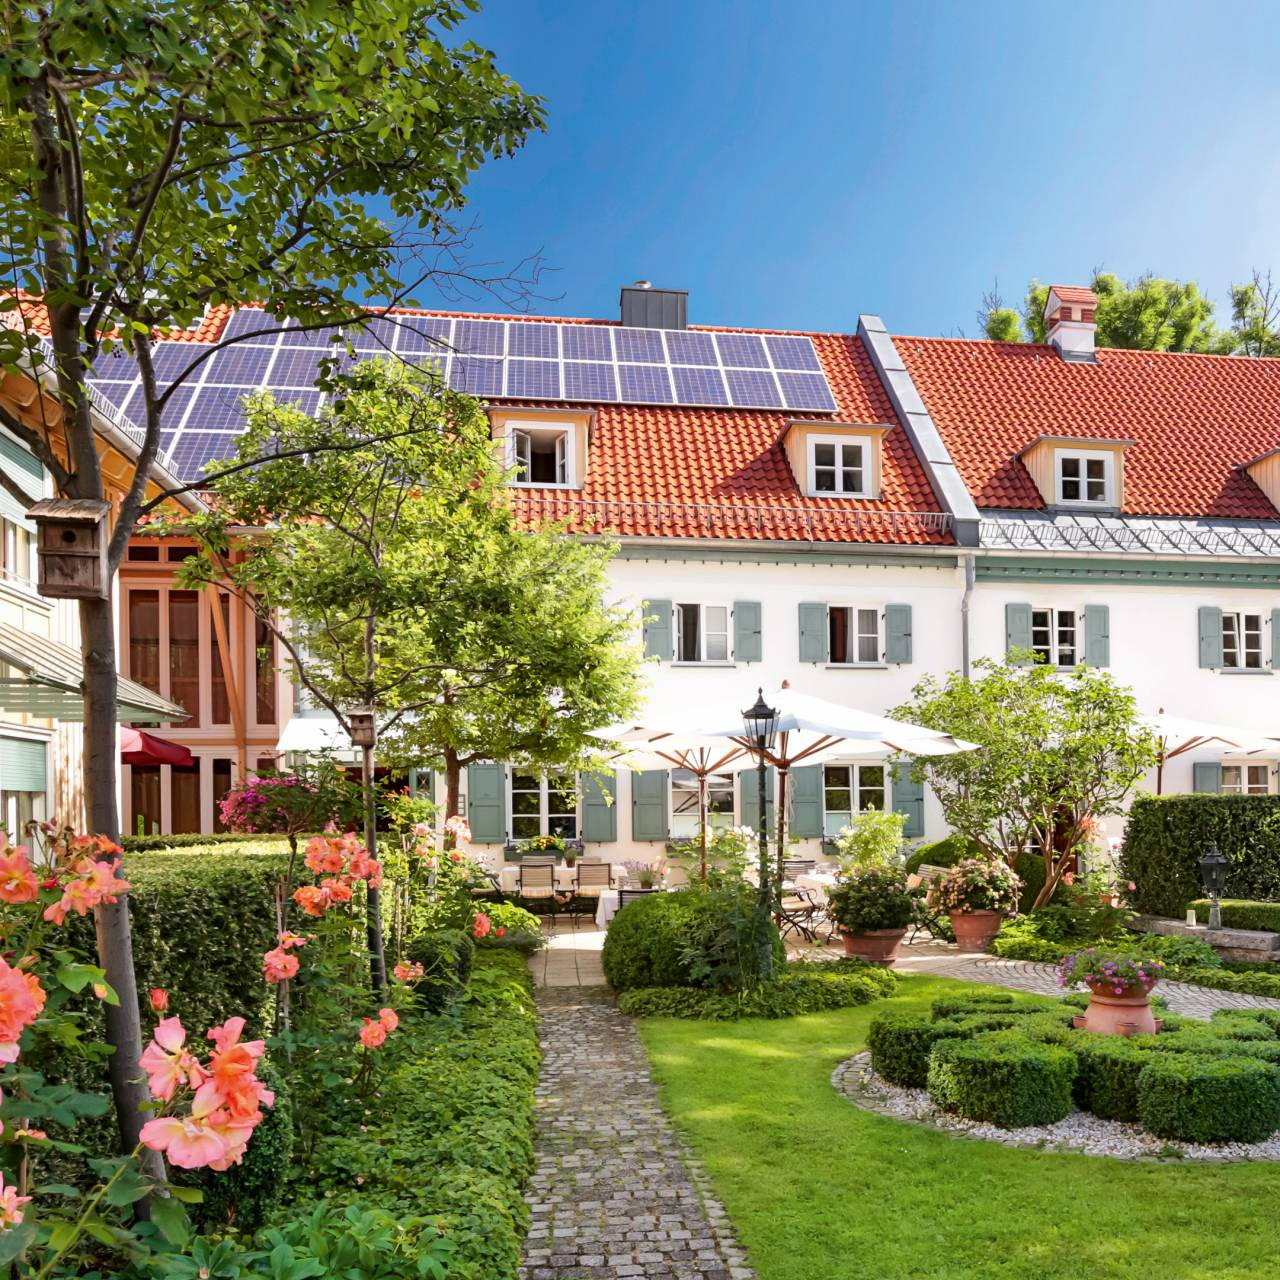 Hotel Seitner Hof in Pullach in the Isar Valley